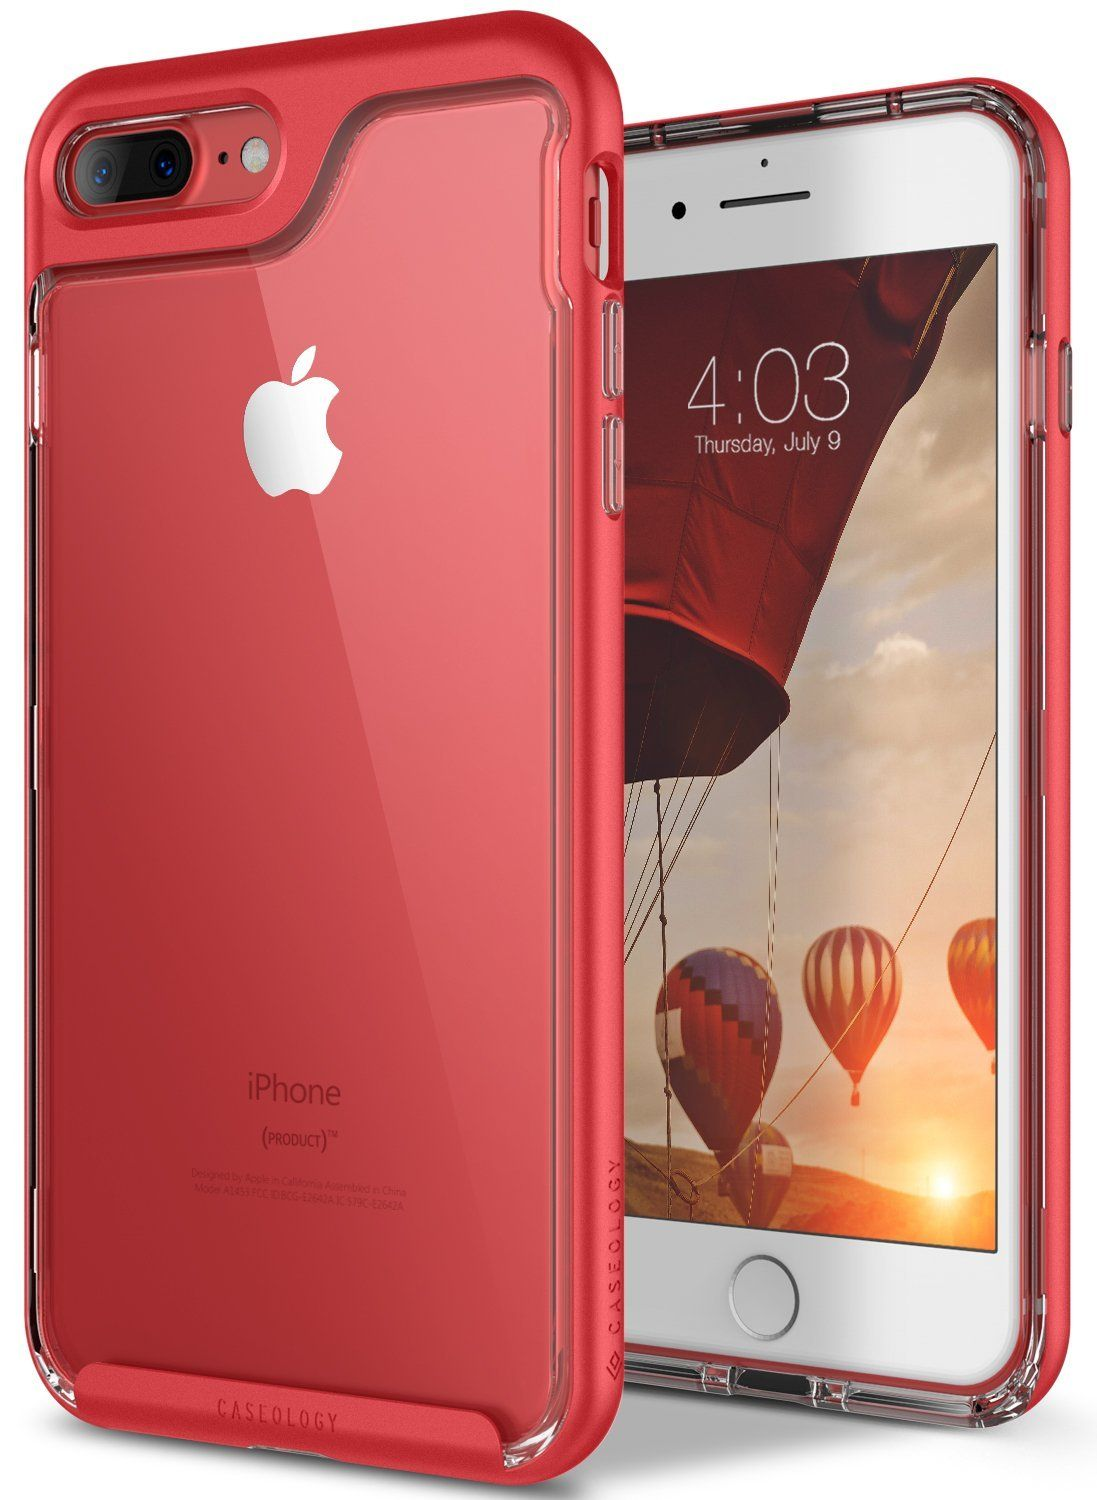 Caseology Skyfall Series Iphone 7 Plus 8 Cover Case With Baseus Air Macbook Pro 13 Inch 2016 Transparent Clear Hard Slim Protective For Apple 2017 Red